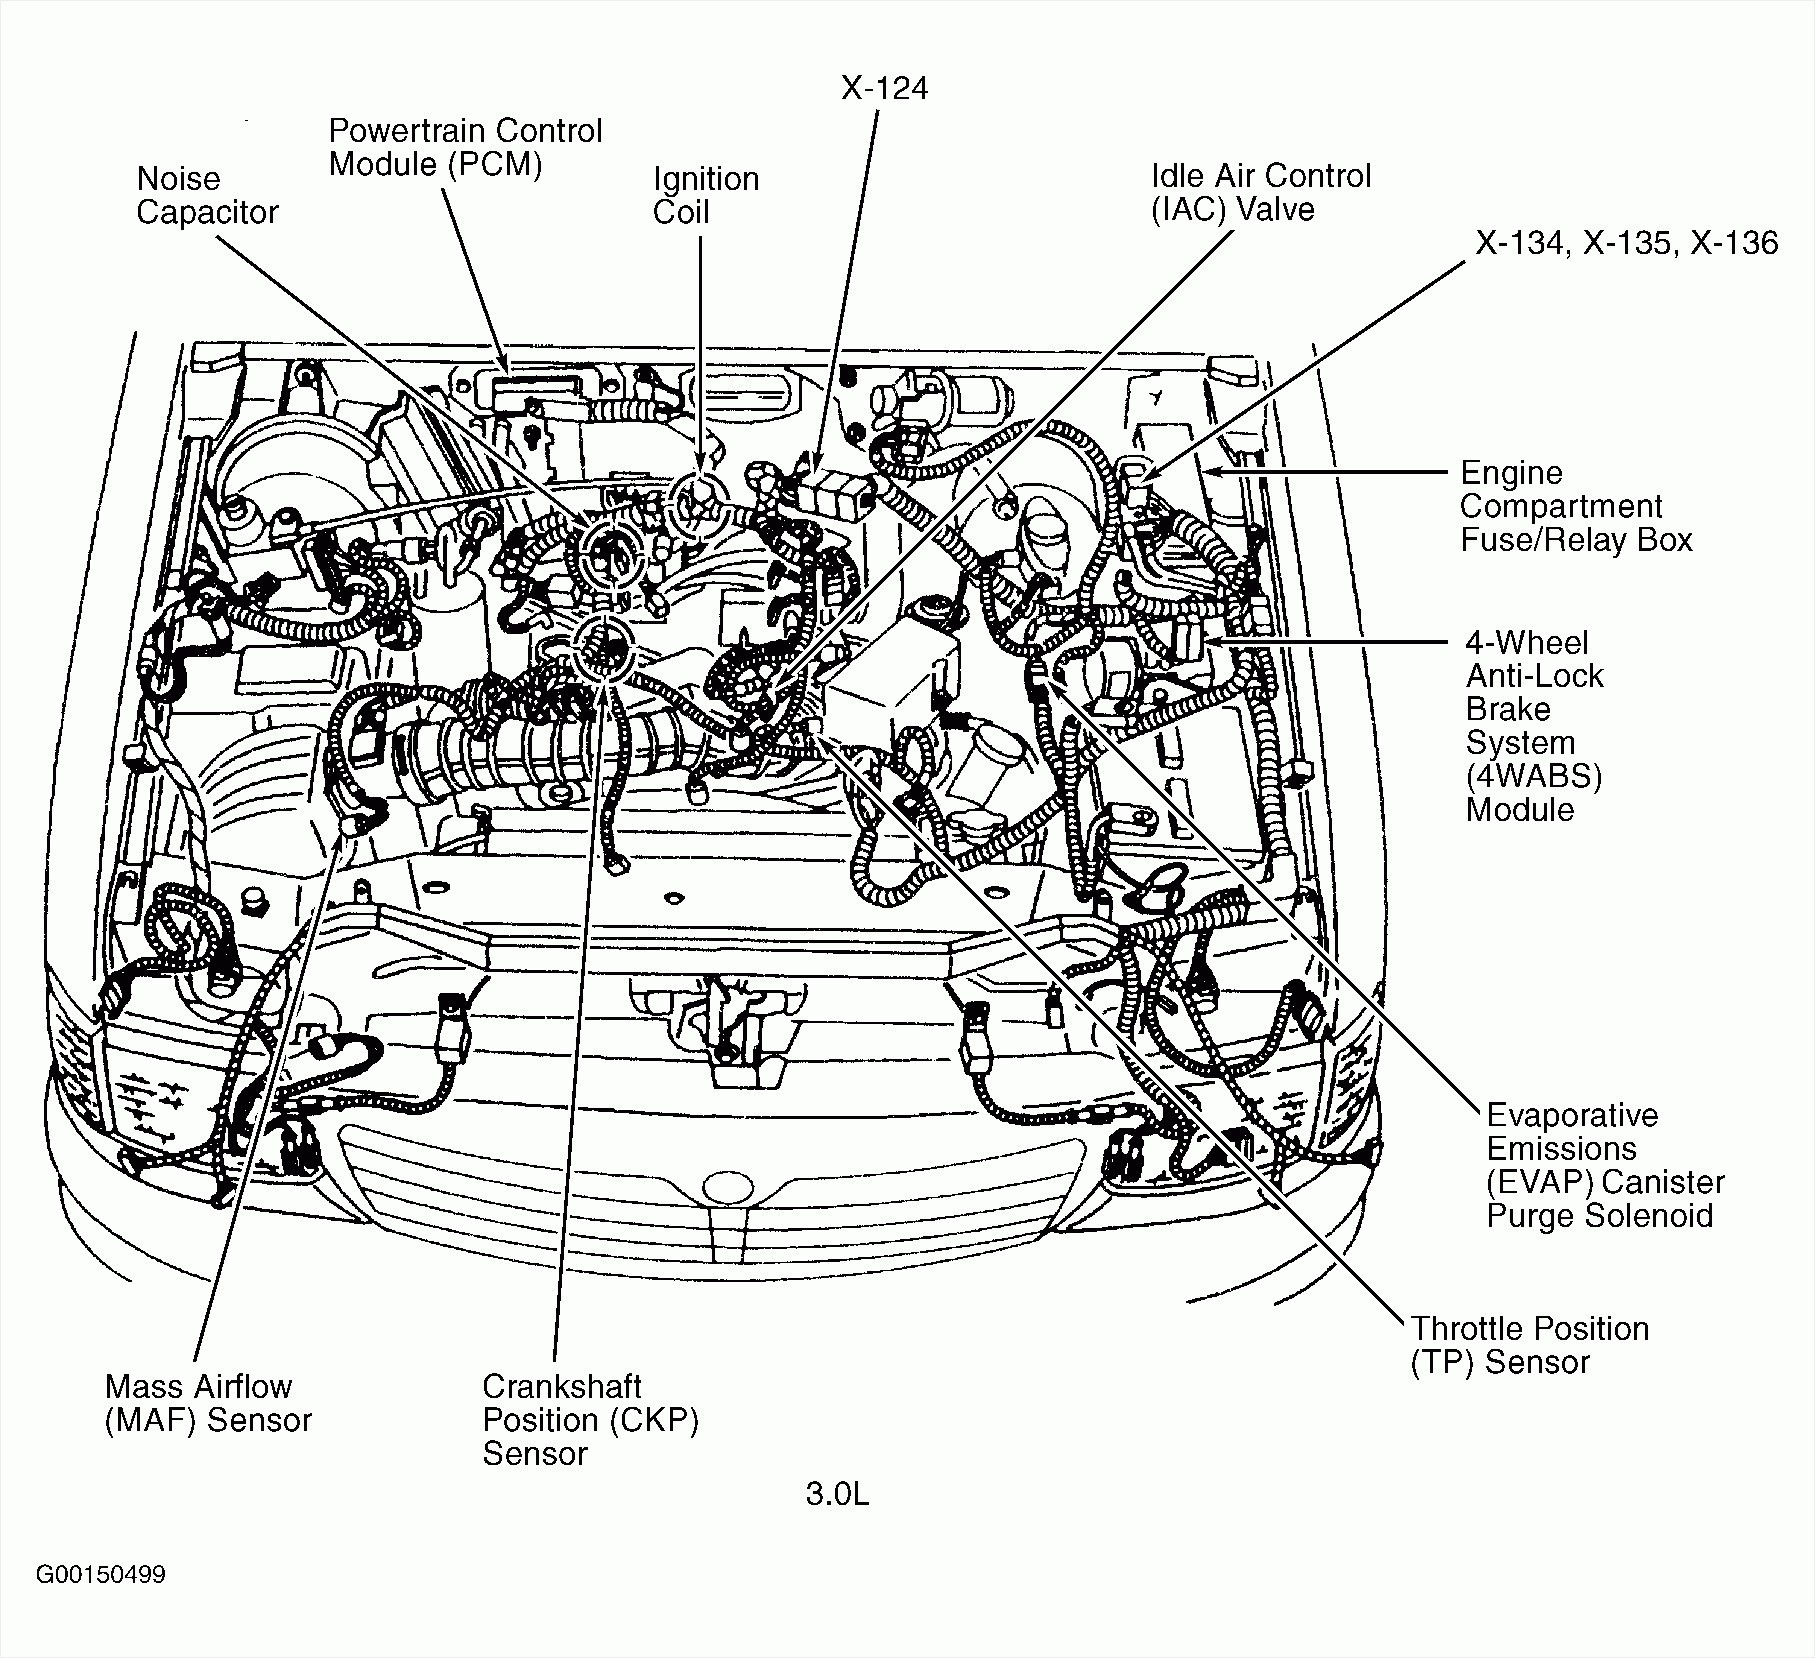 mx5 engine bay diagram my wiring diagram 89 cadillac deville fuse box diagram